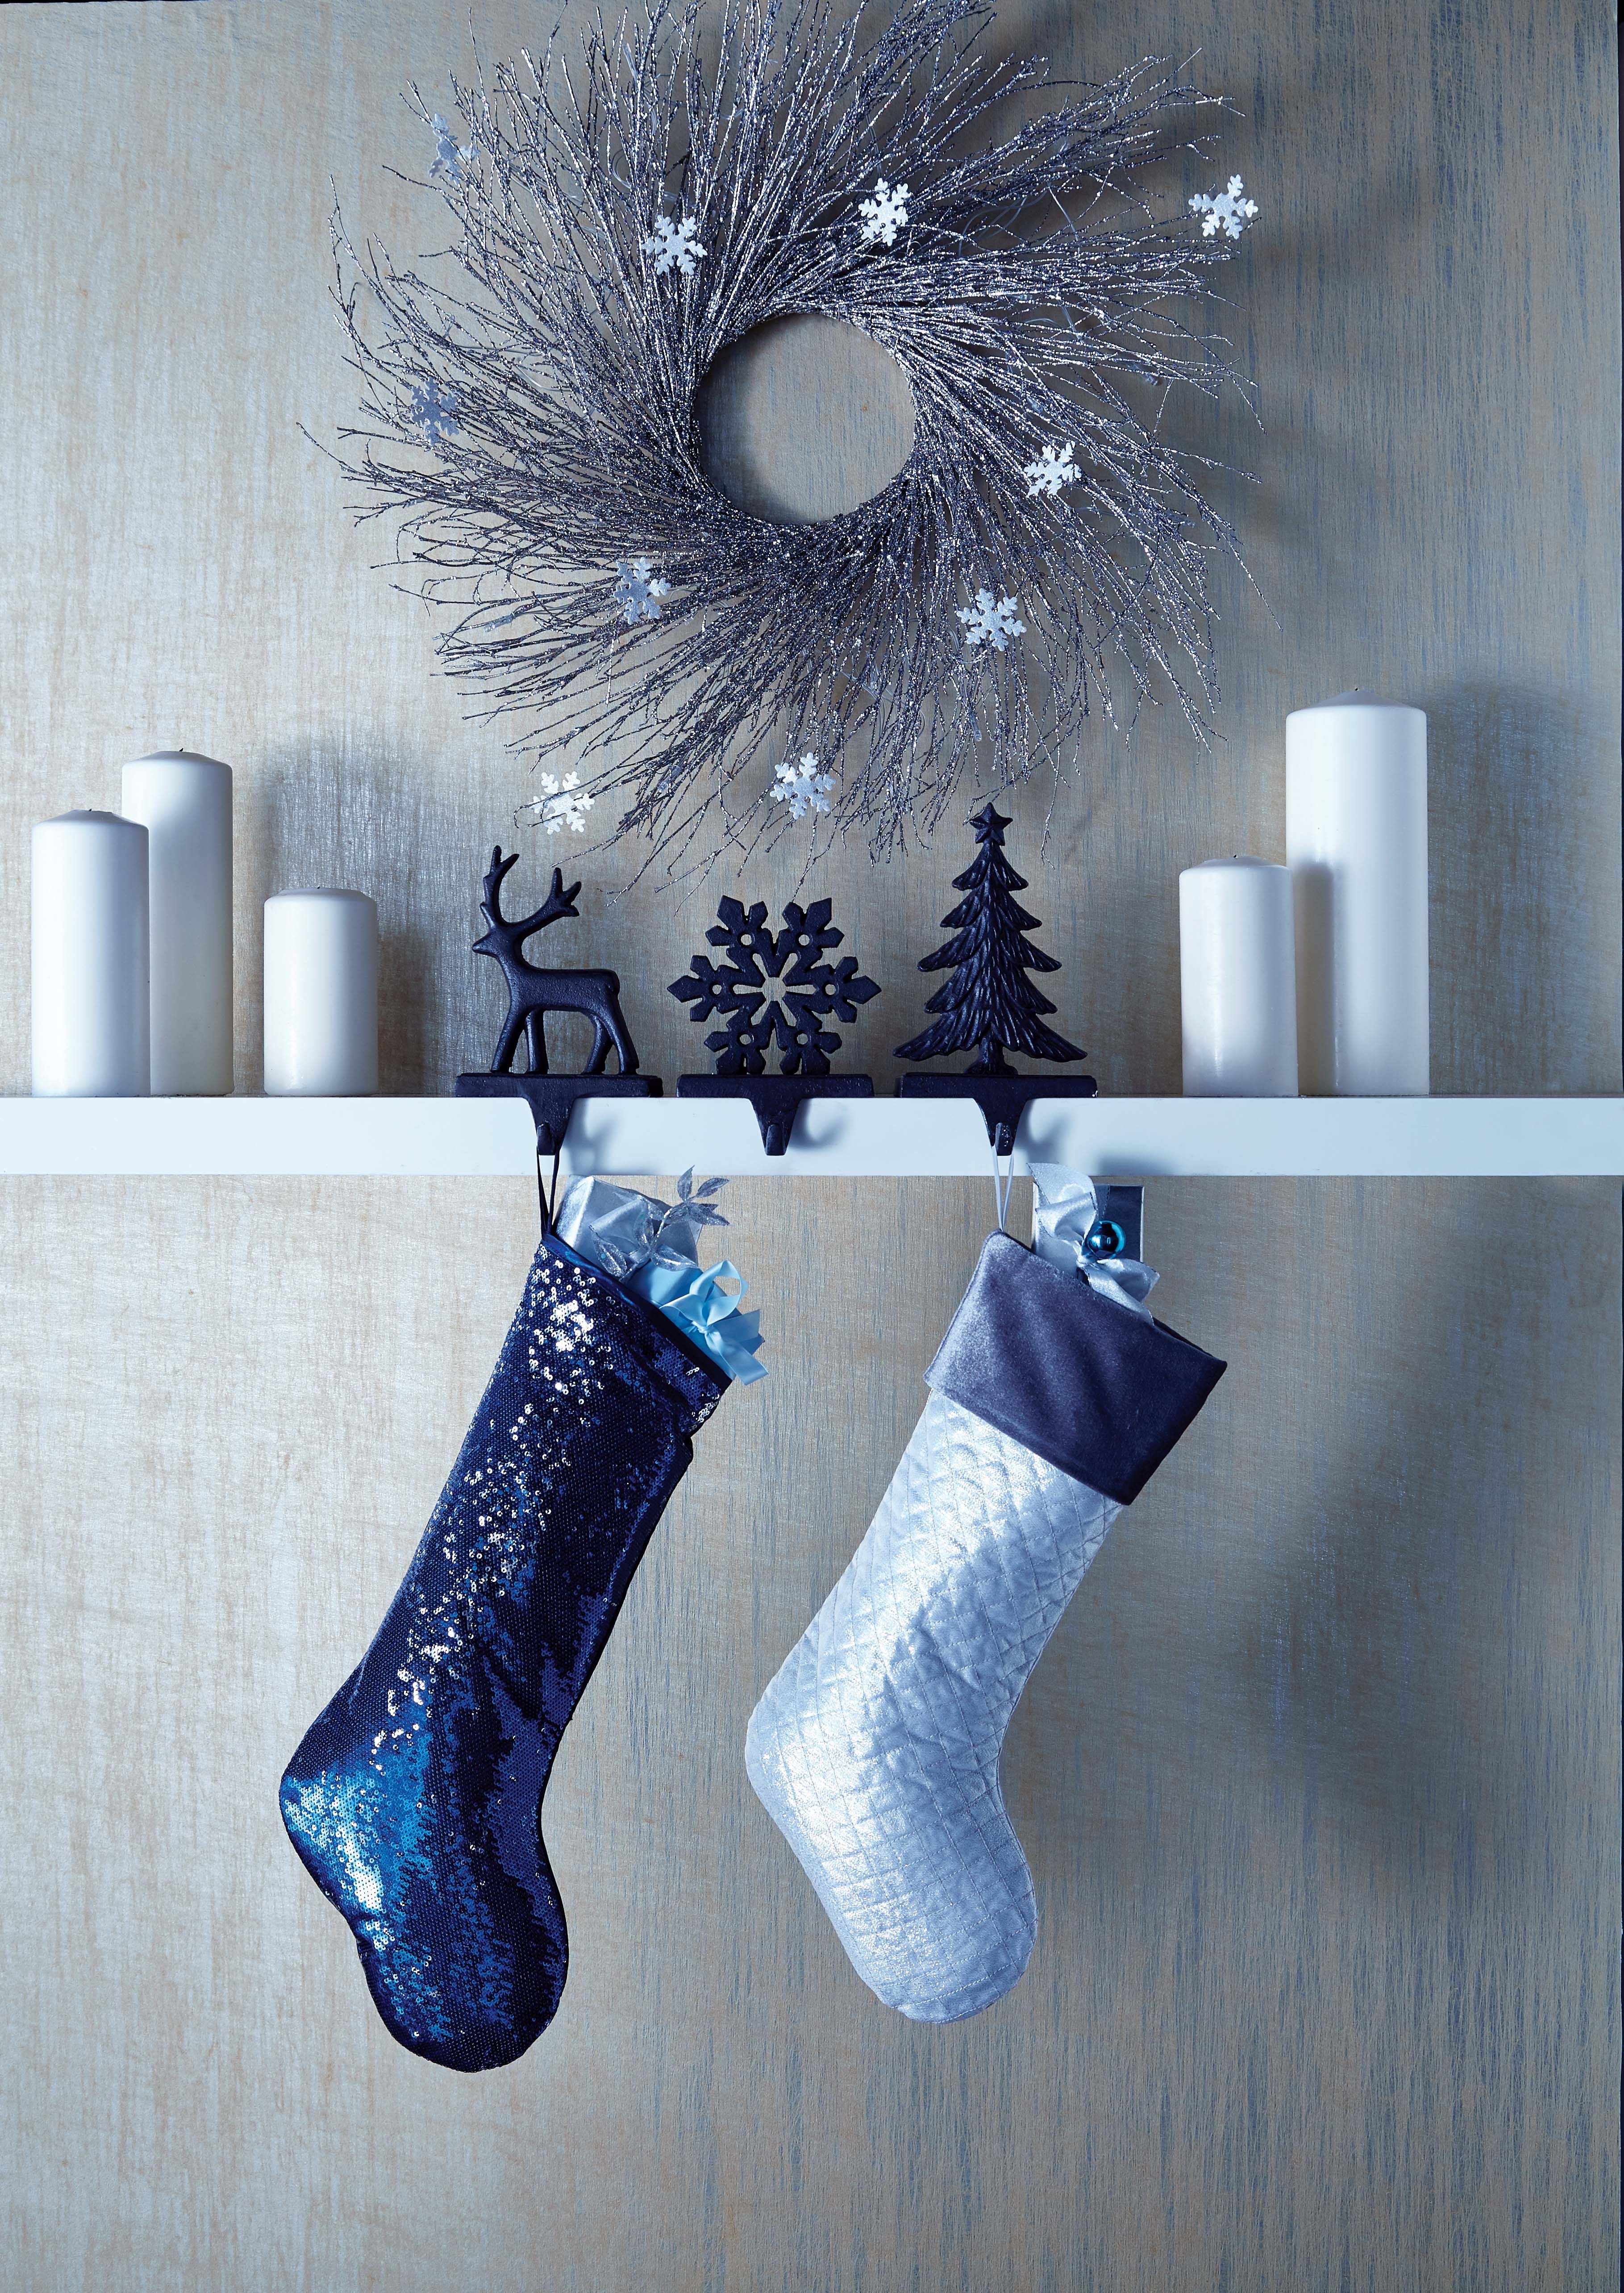 Mix white, blue, and silver for a statement-making mantle